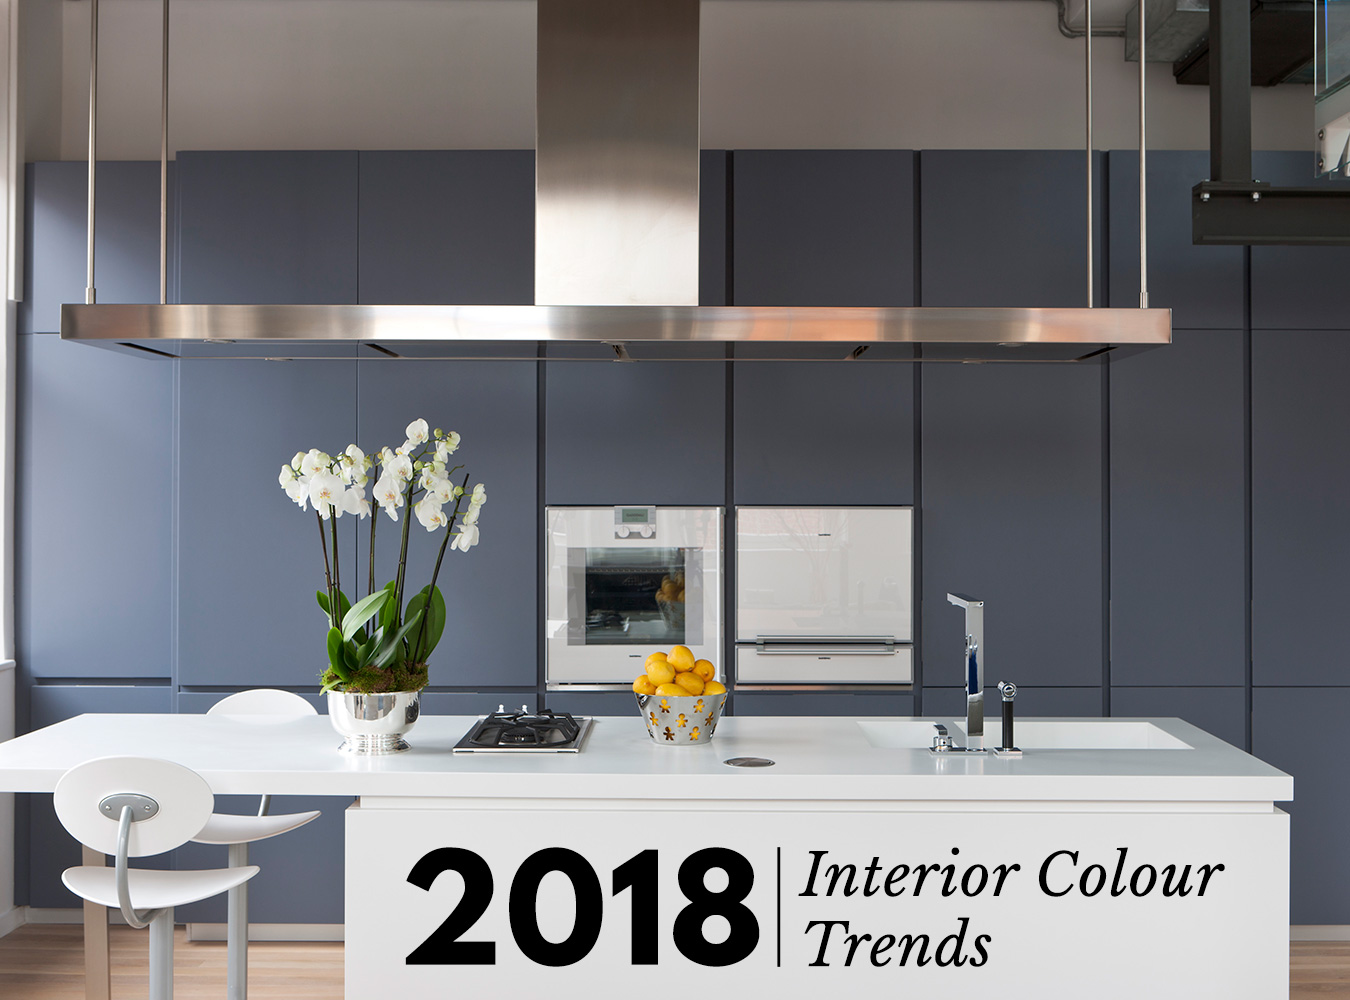 The use of colour in interior decor is extremely important for bringing personality and character to a room even simply adding a pop of colour can change